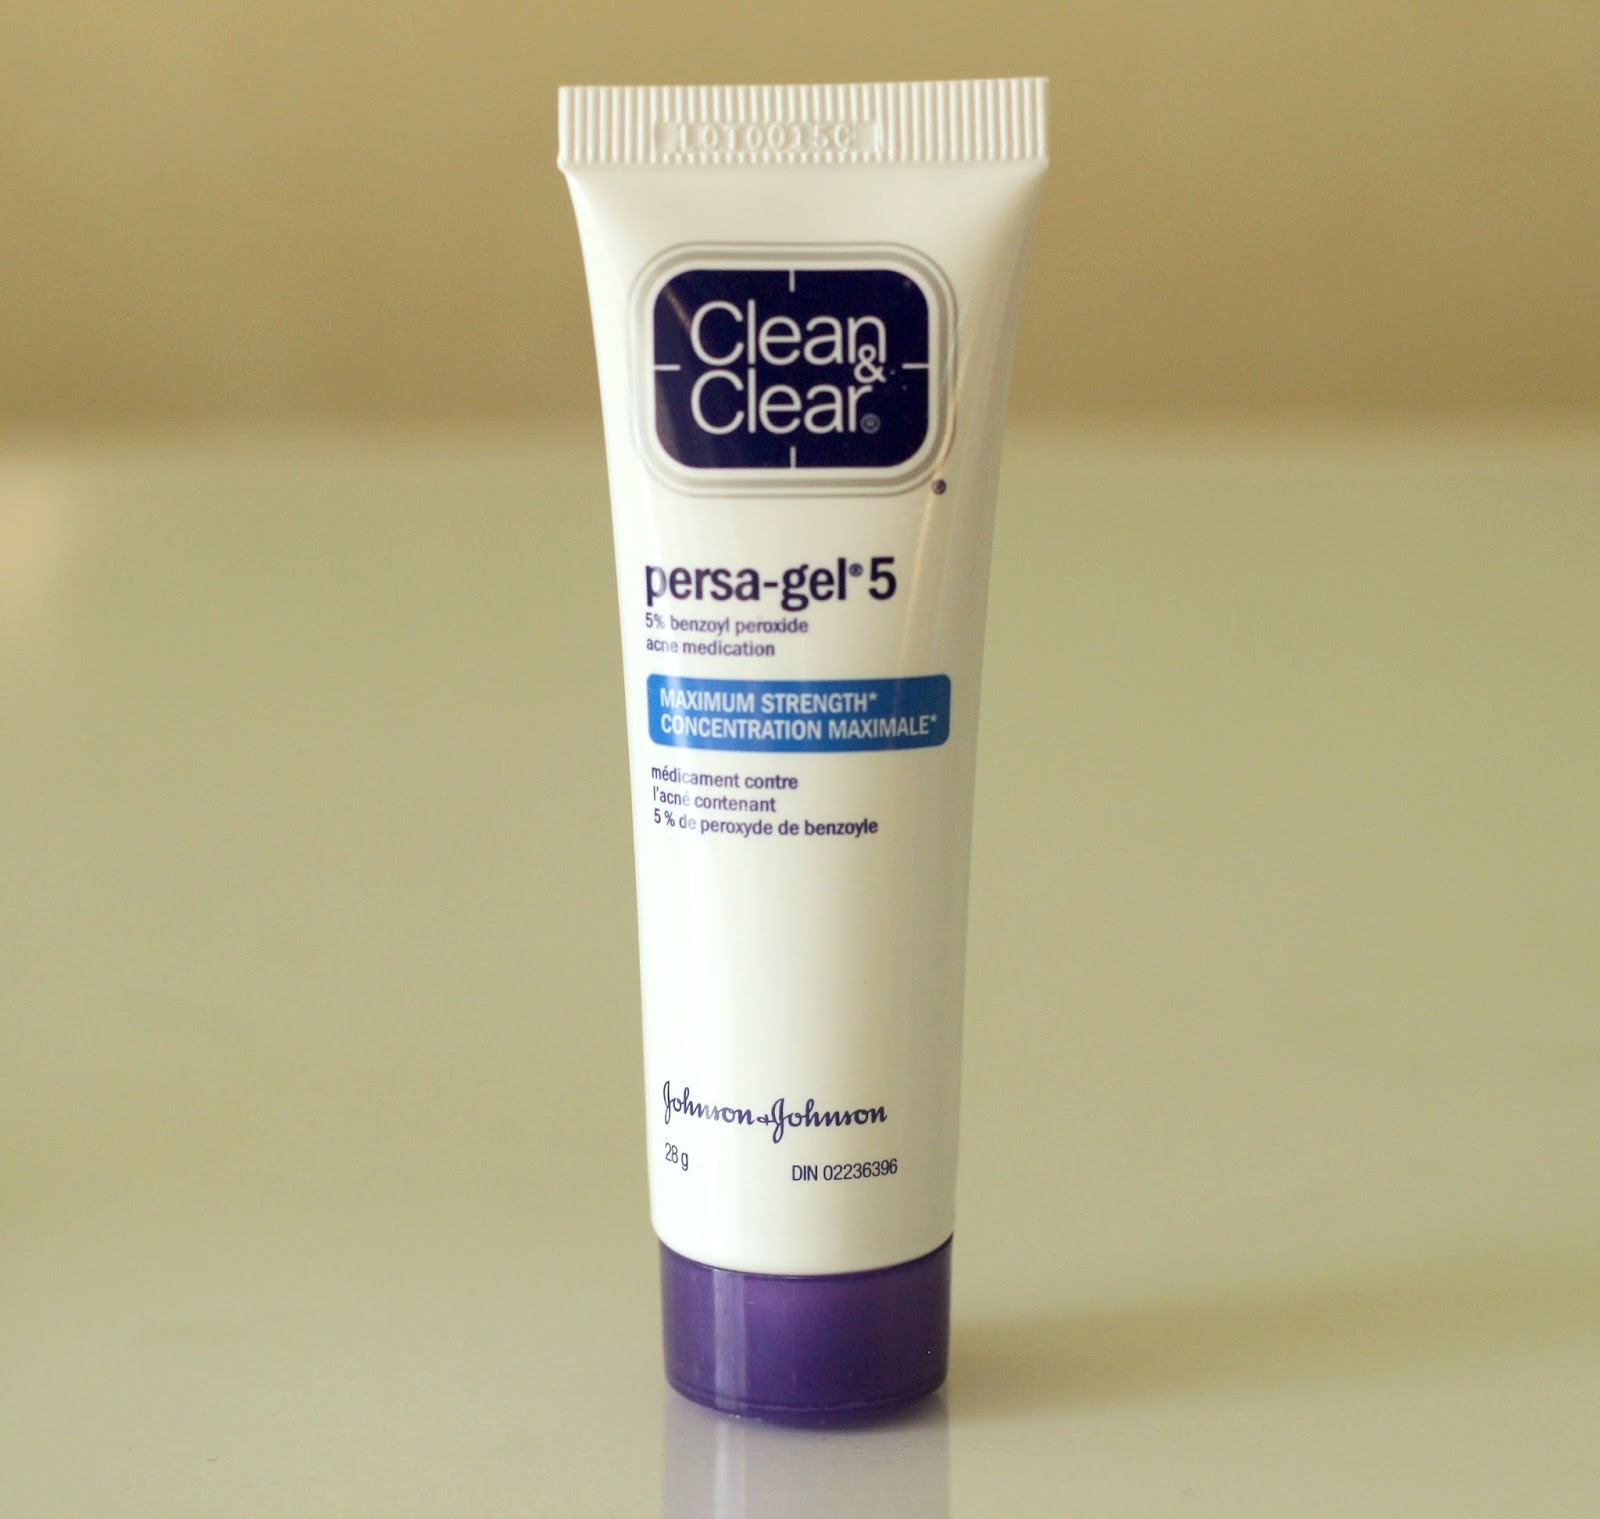 Clean & Clear Persa-Gel 5 Acne Treatment